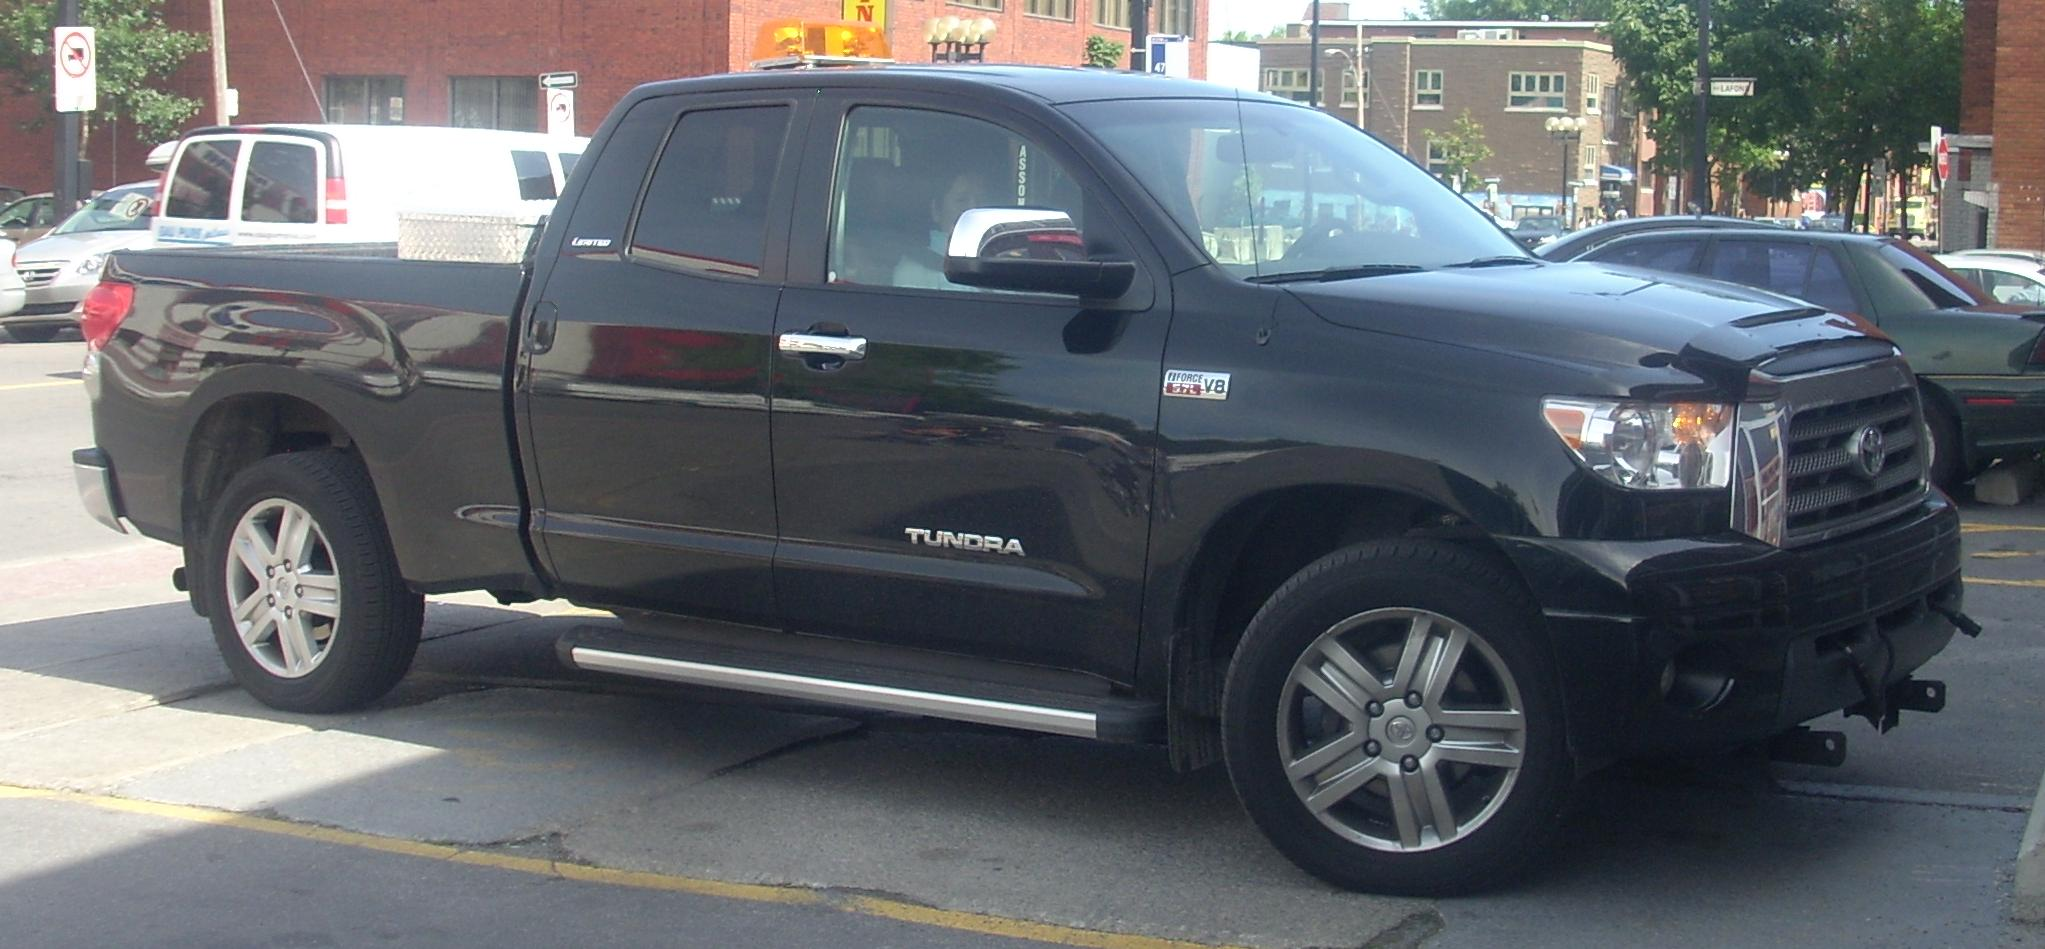 File:Toyota Tundra Limited Double Cab.JPG - Wikimedia Commons